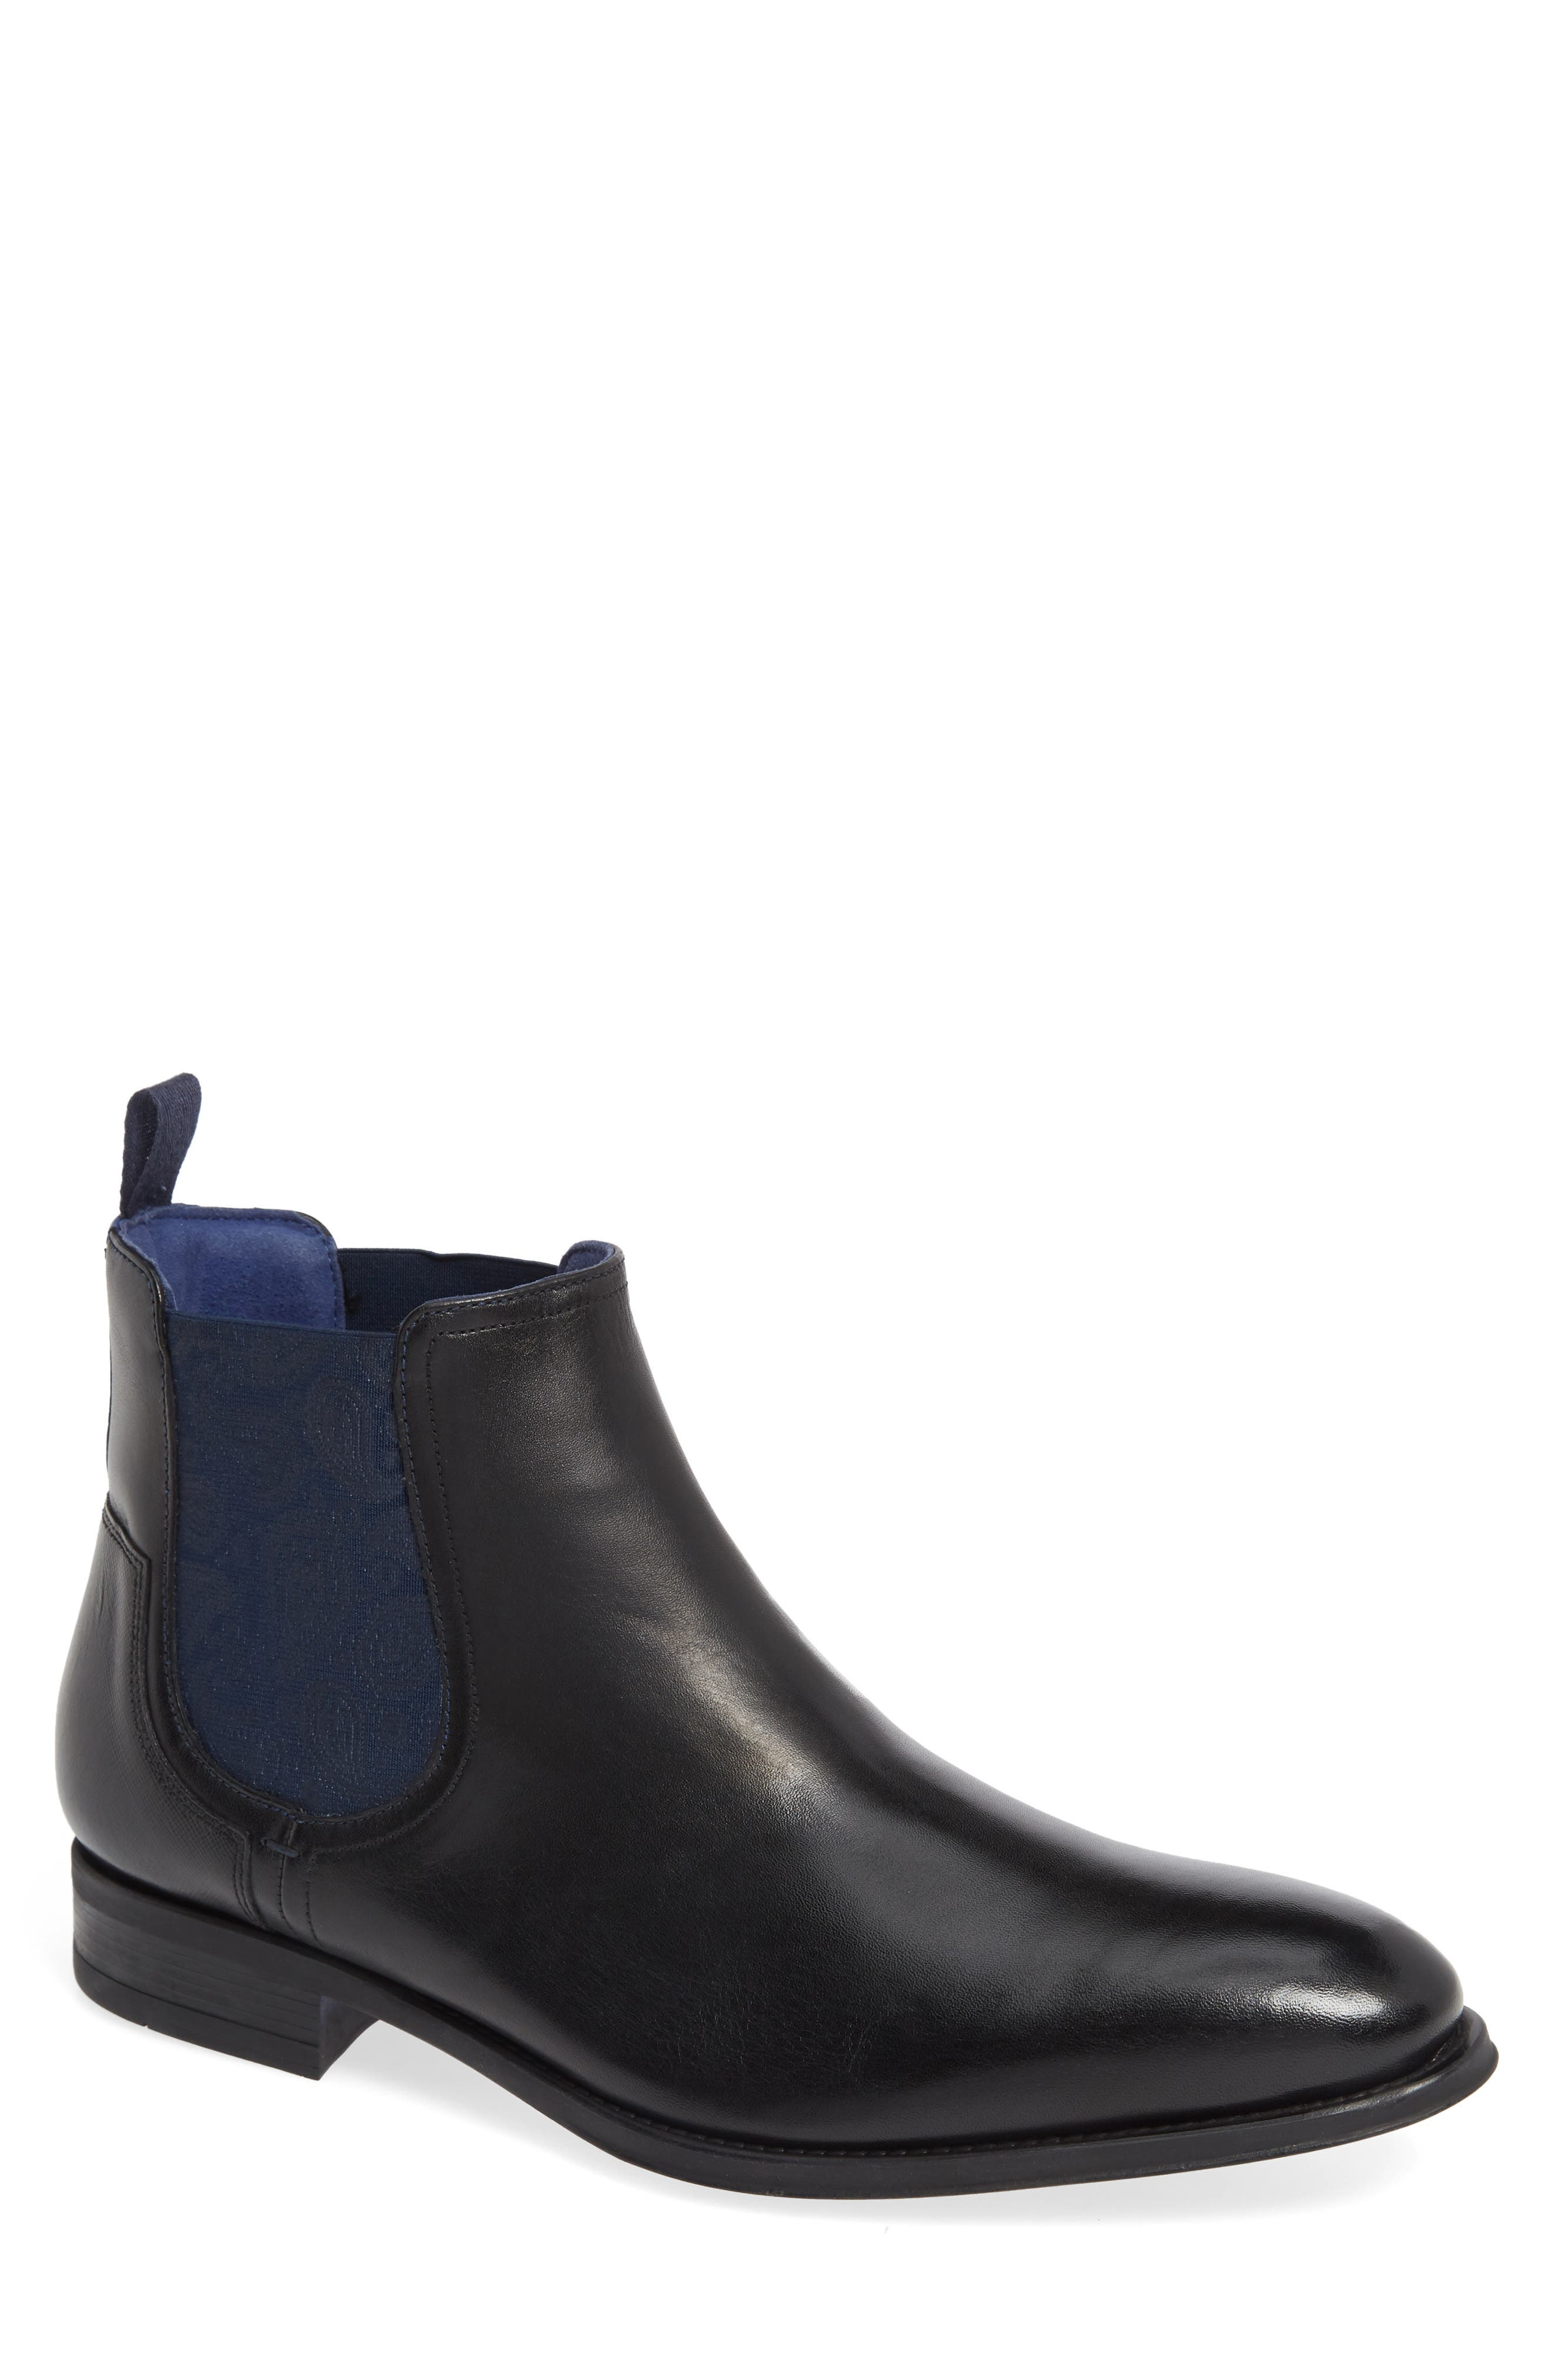 1b80a63c80b5 Mens Ted Baker London Boots